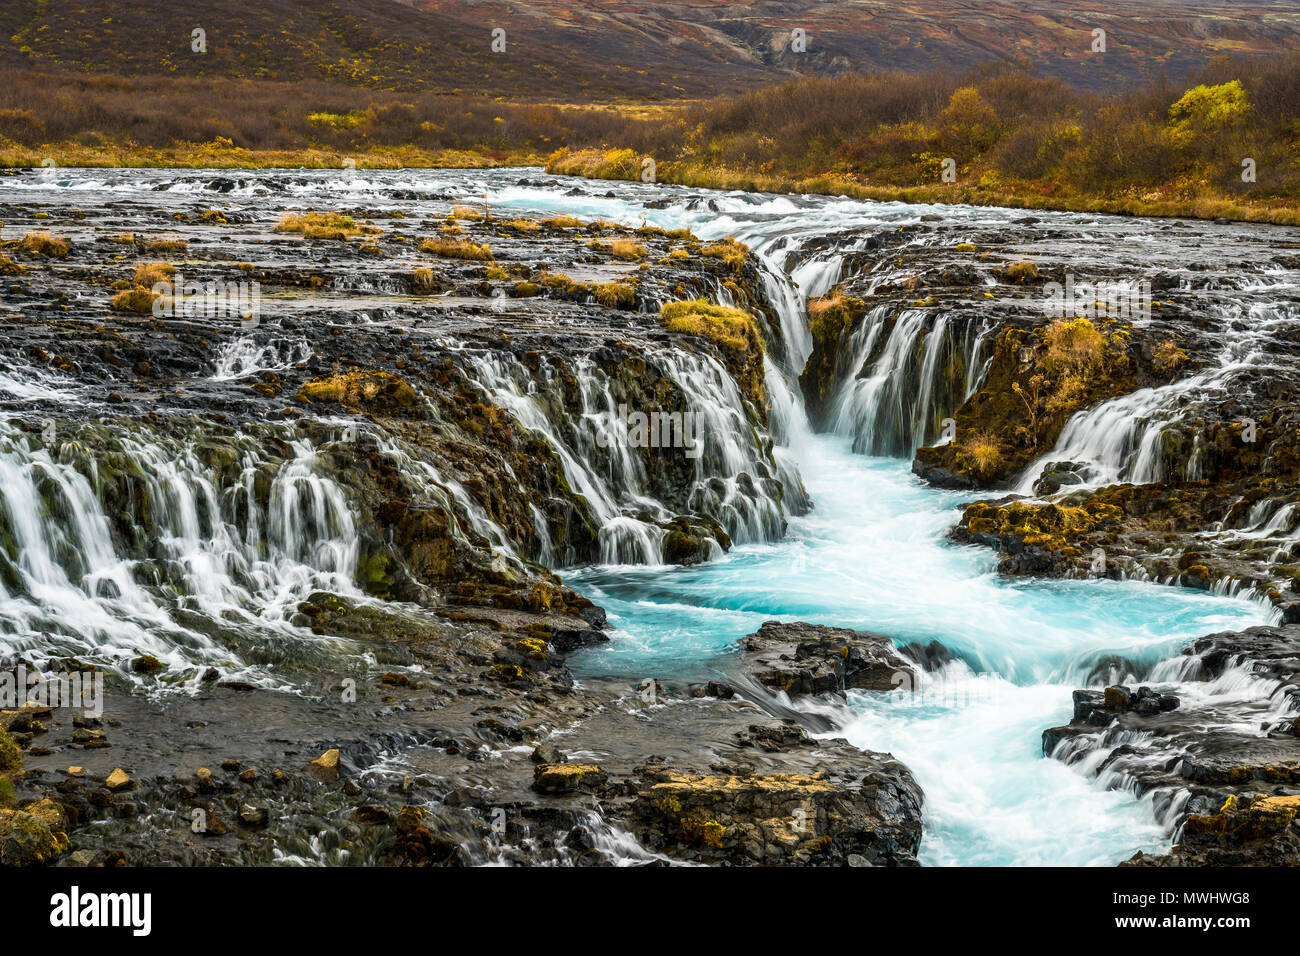 natural whirl pool at Bruarfoss, Golden Circle, Iceland - Stock Image